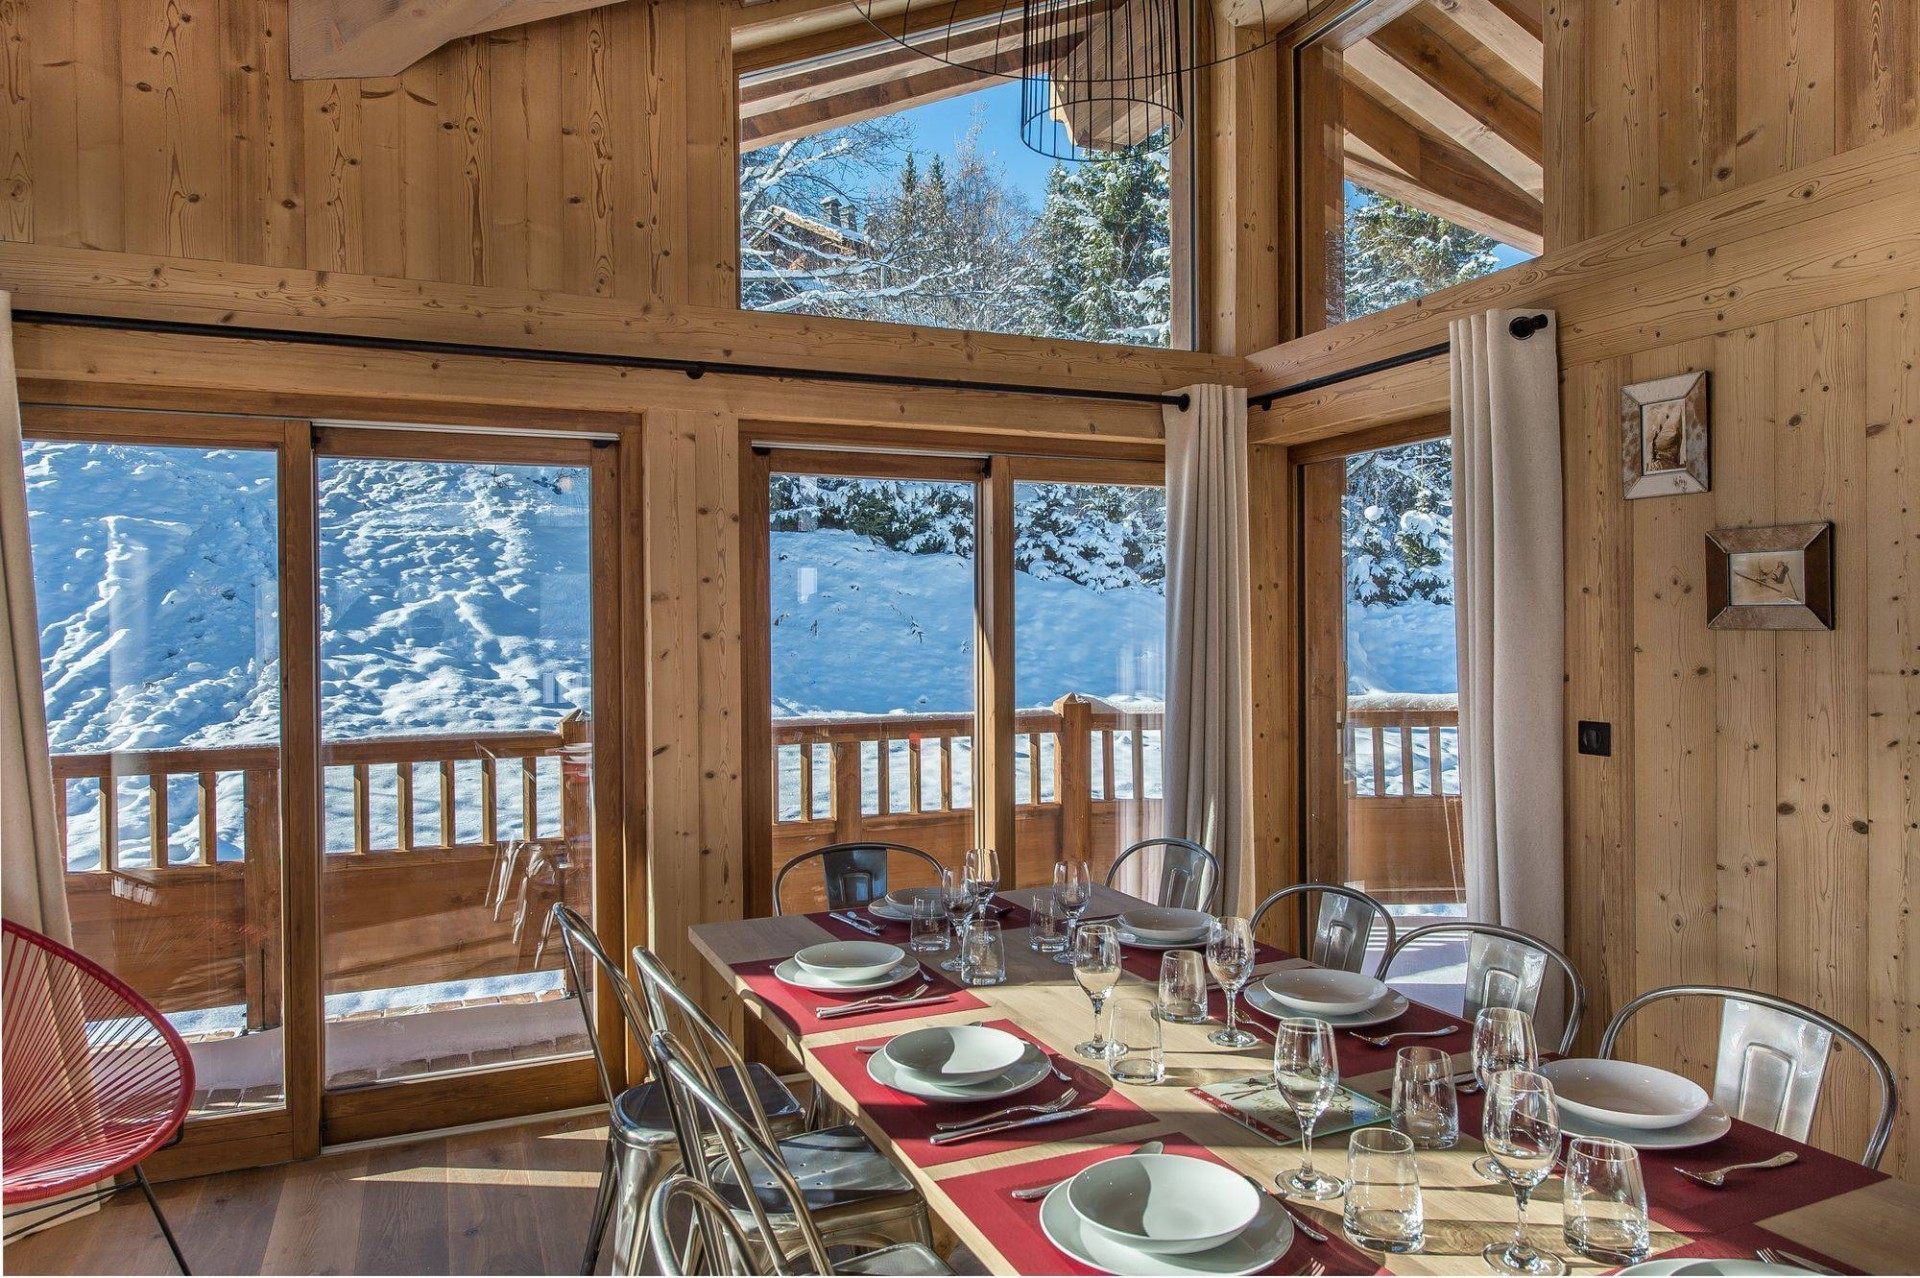 Courchevel 1550 Location Chalet Luxe Nibite Salle A Manger